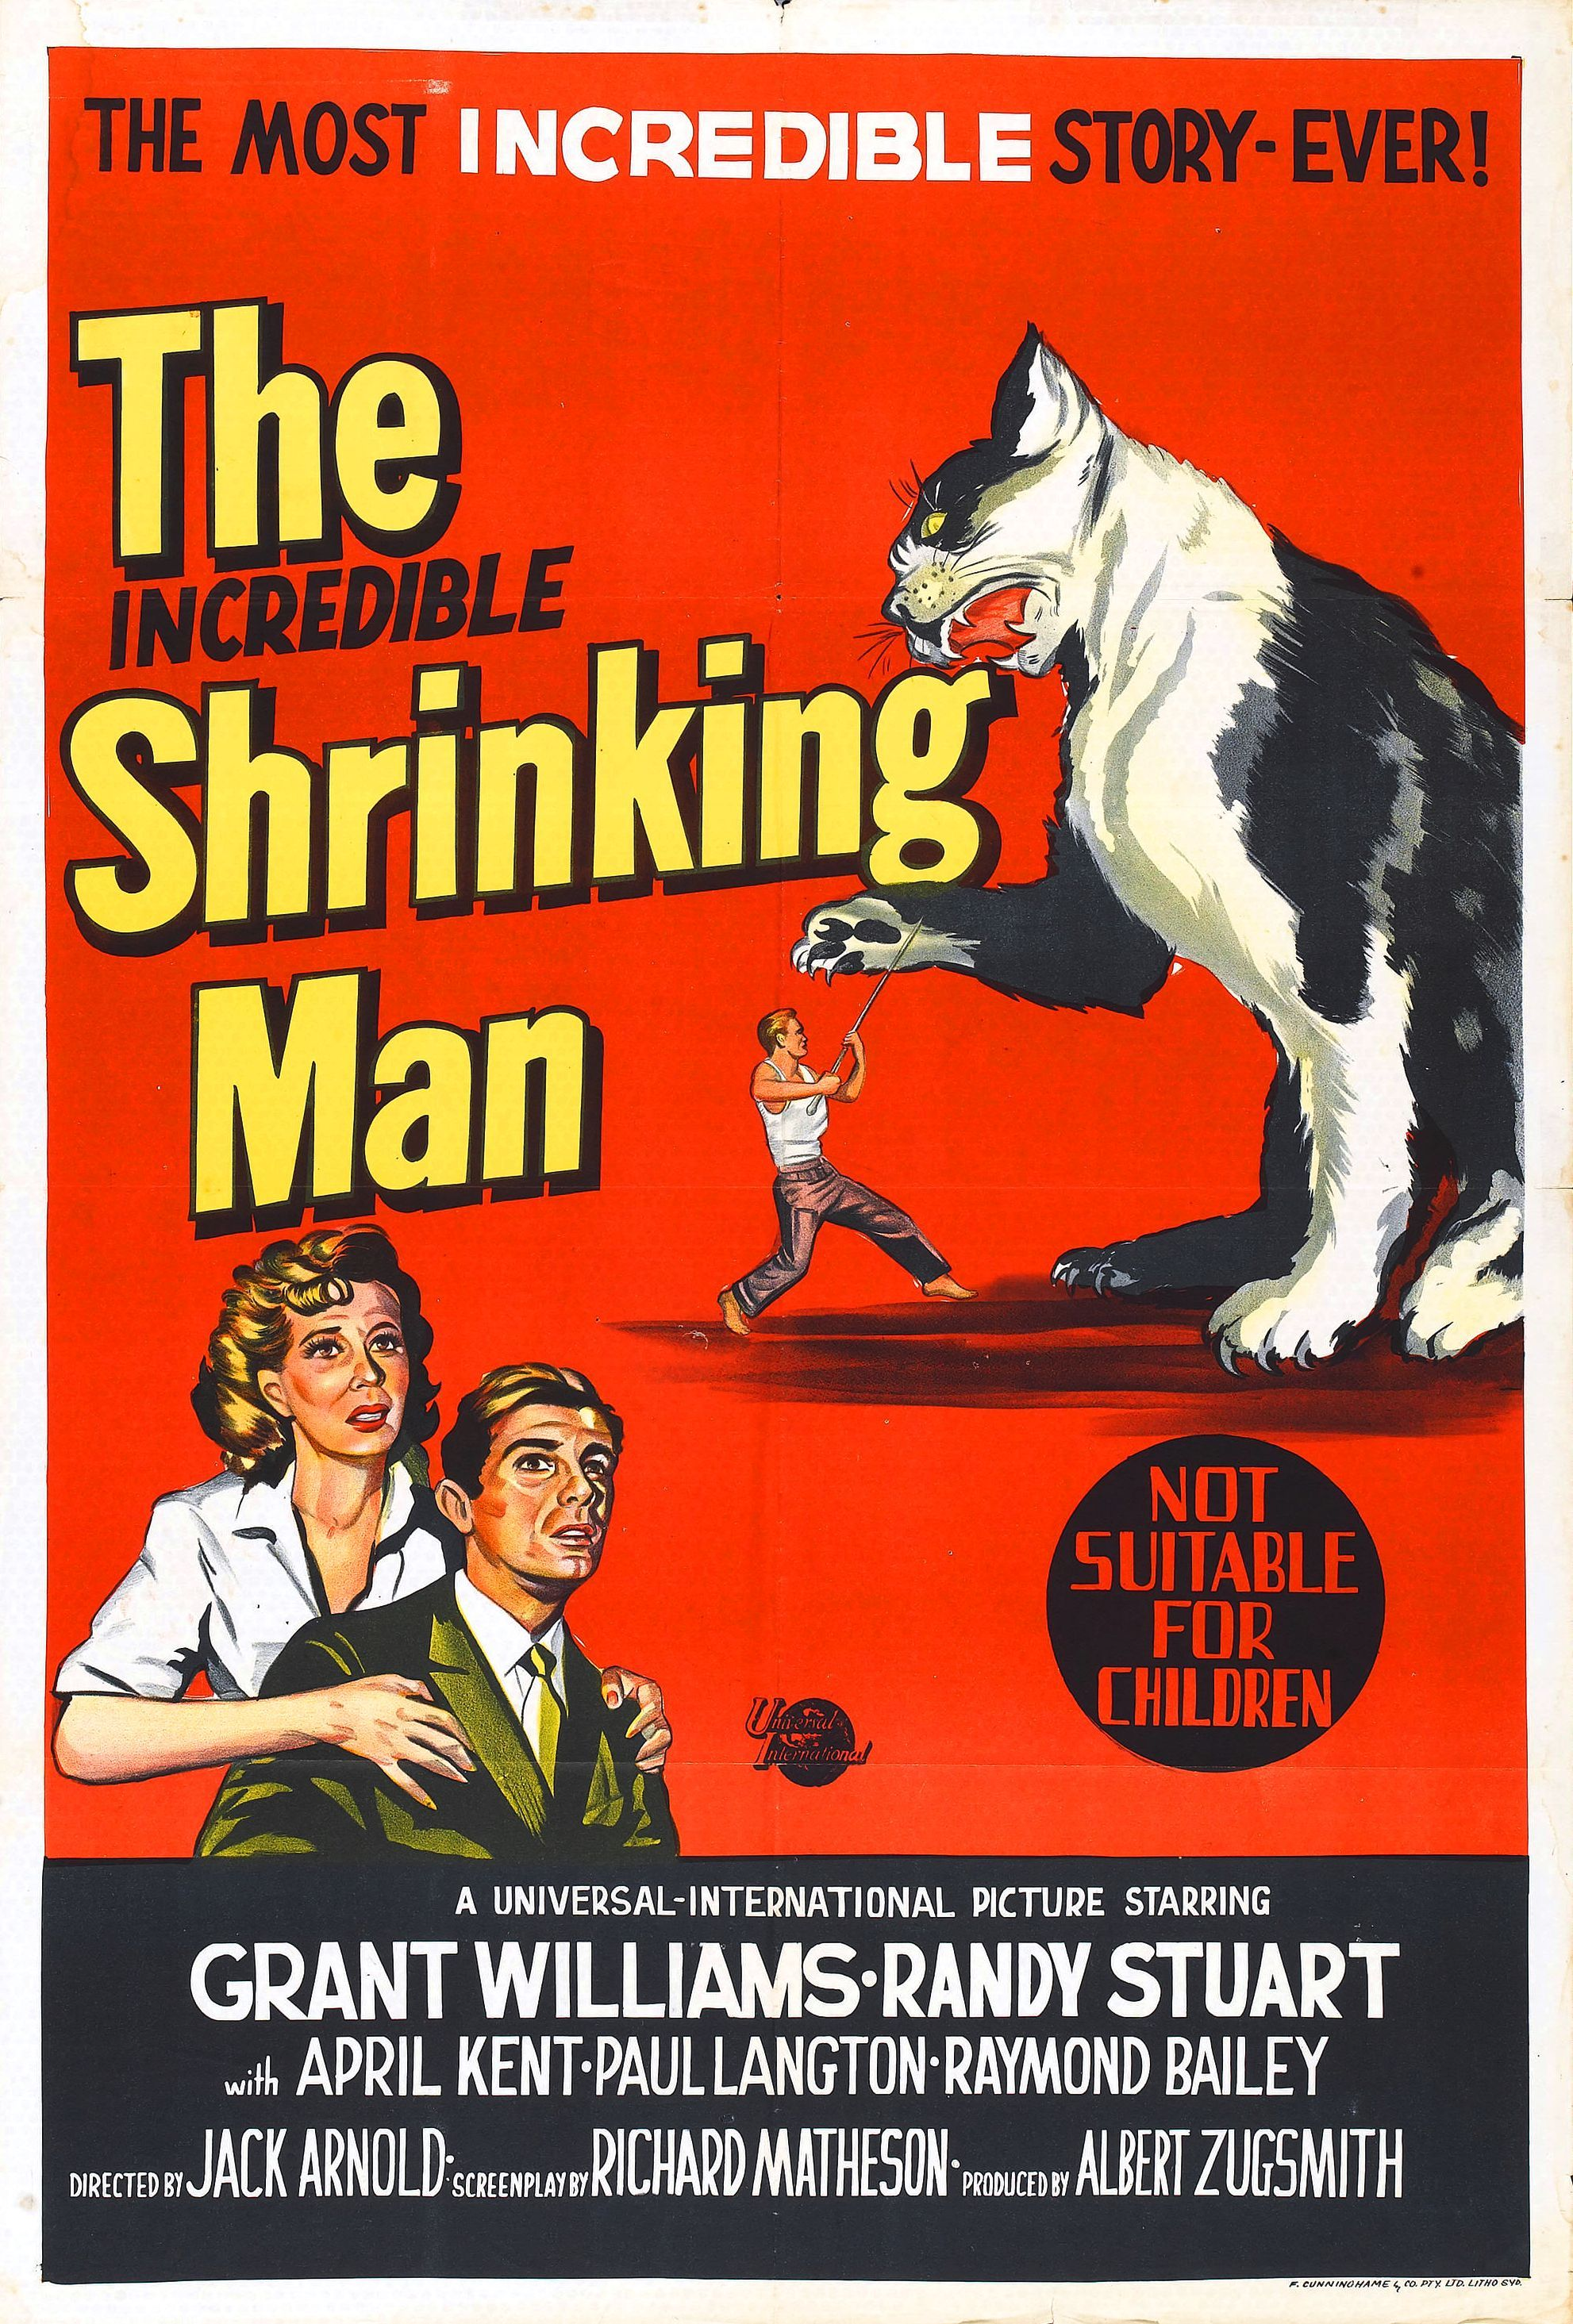 The Incredible Shrinking Man (1958)